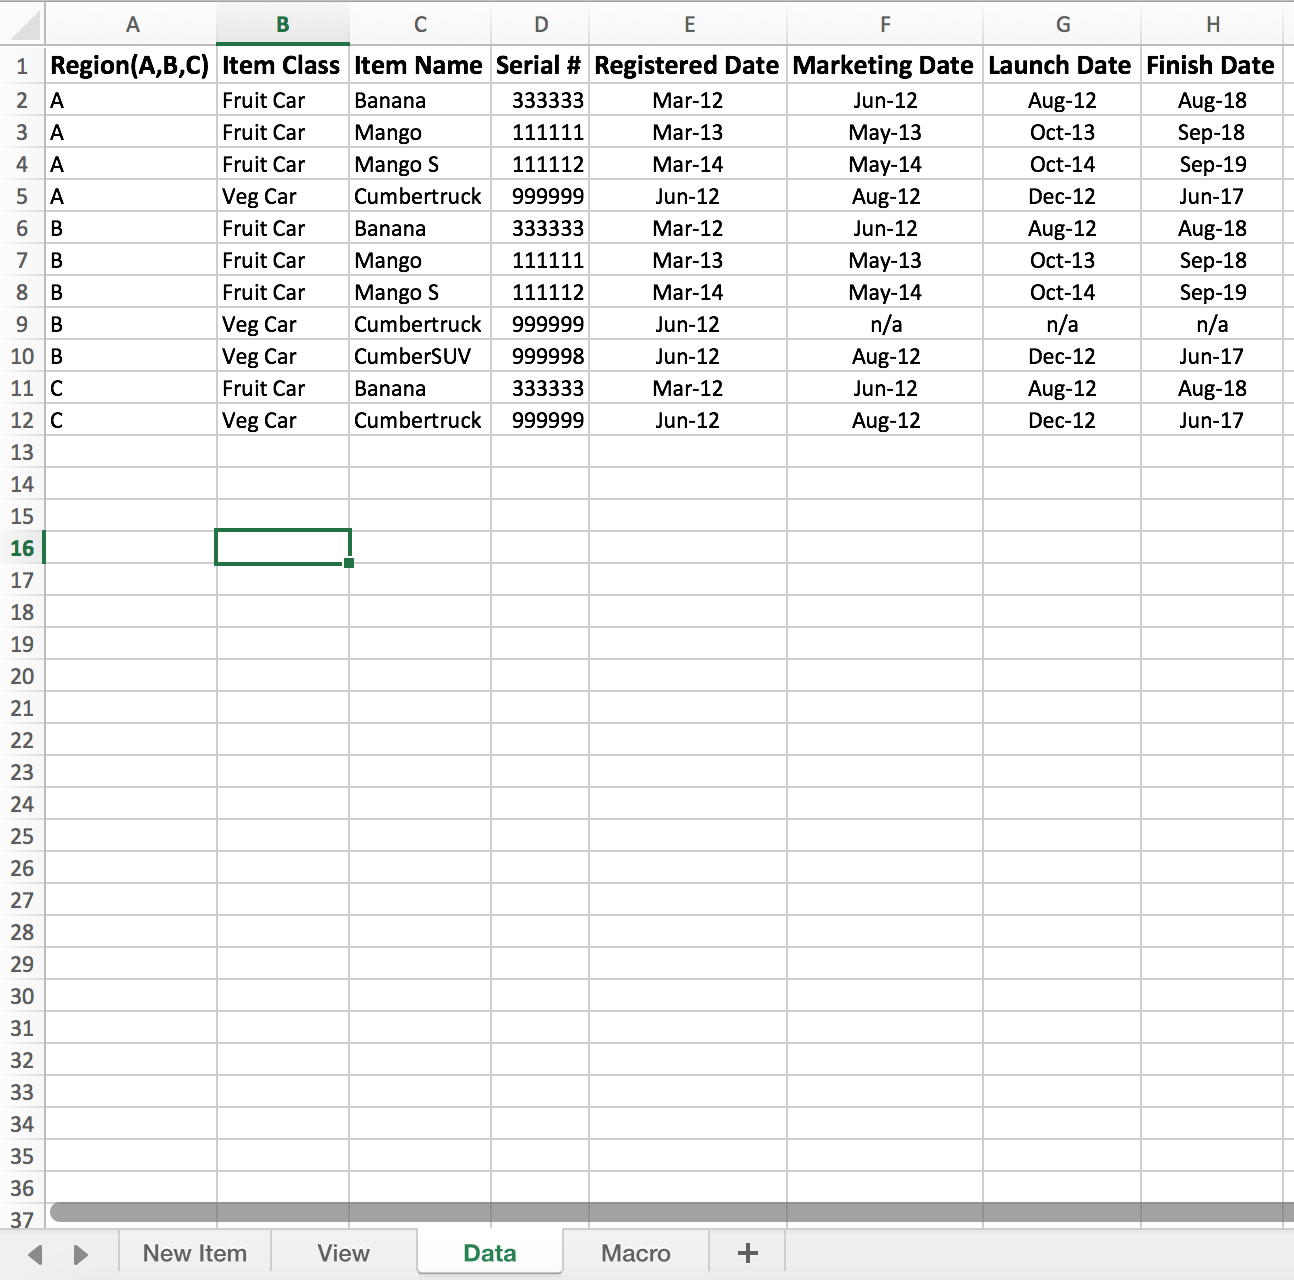 Copying A Row Inserting Multiple New Rows With The Pasted